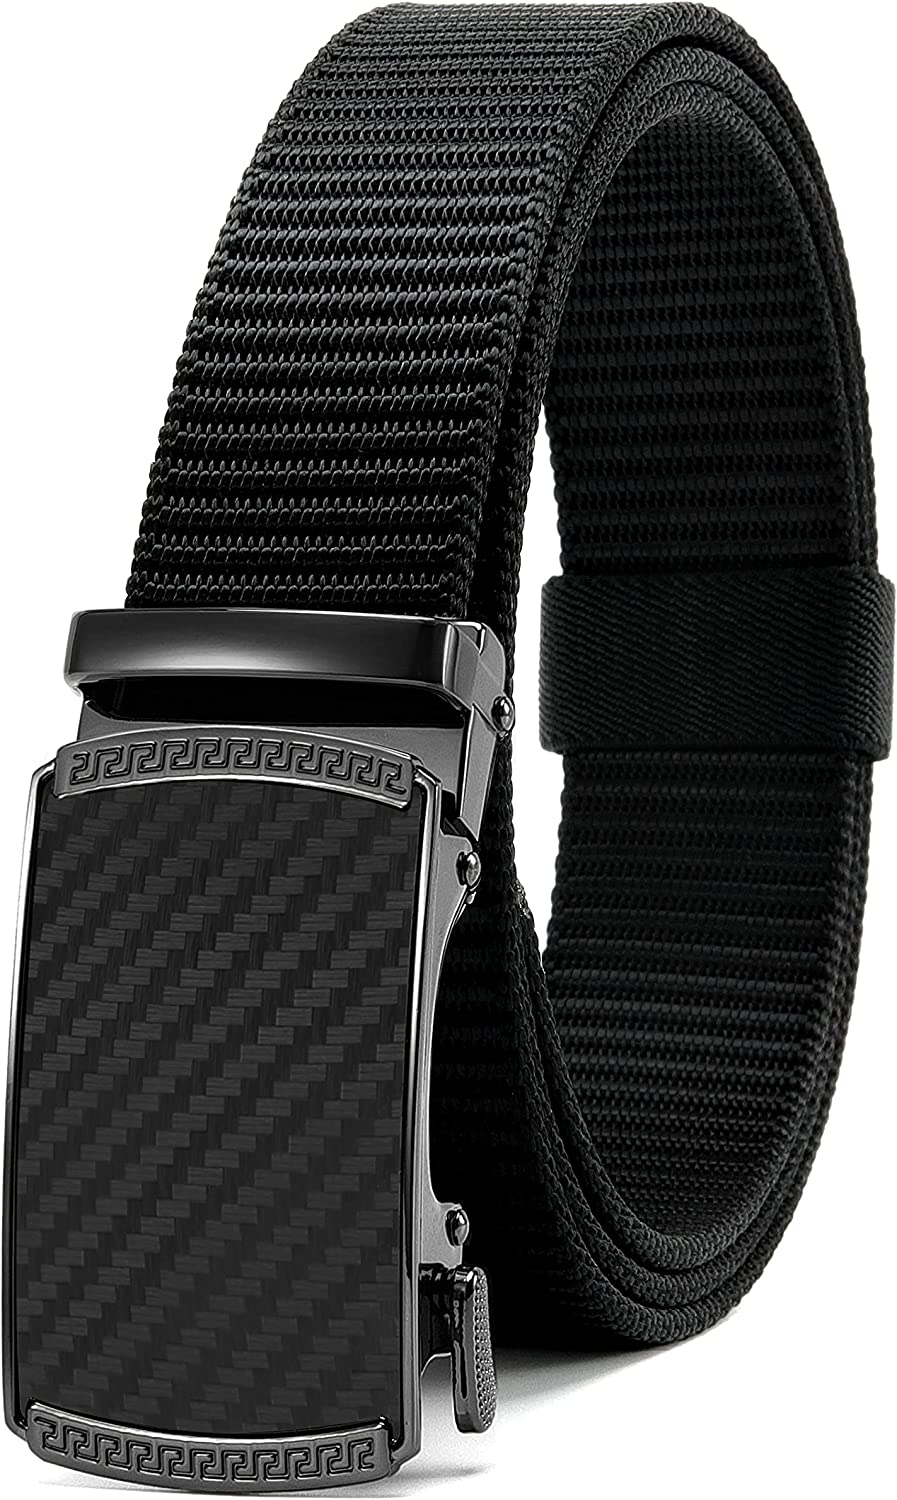 2021new shipping free CHAOREN Ratchet Belt Nylon Golf Belts Casual Sales for sale Men for W Hole No